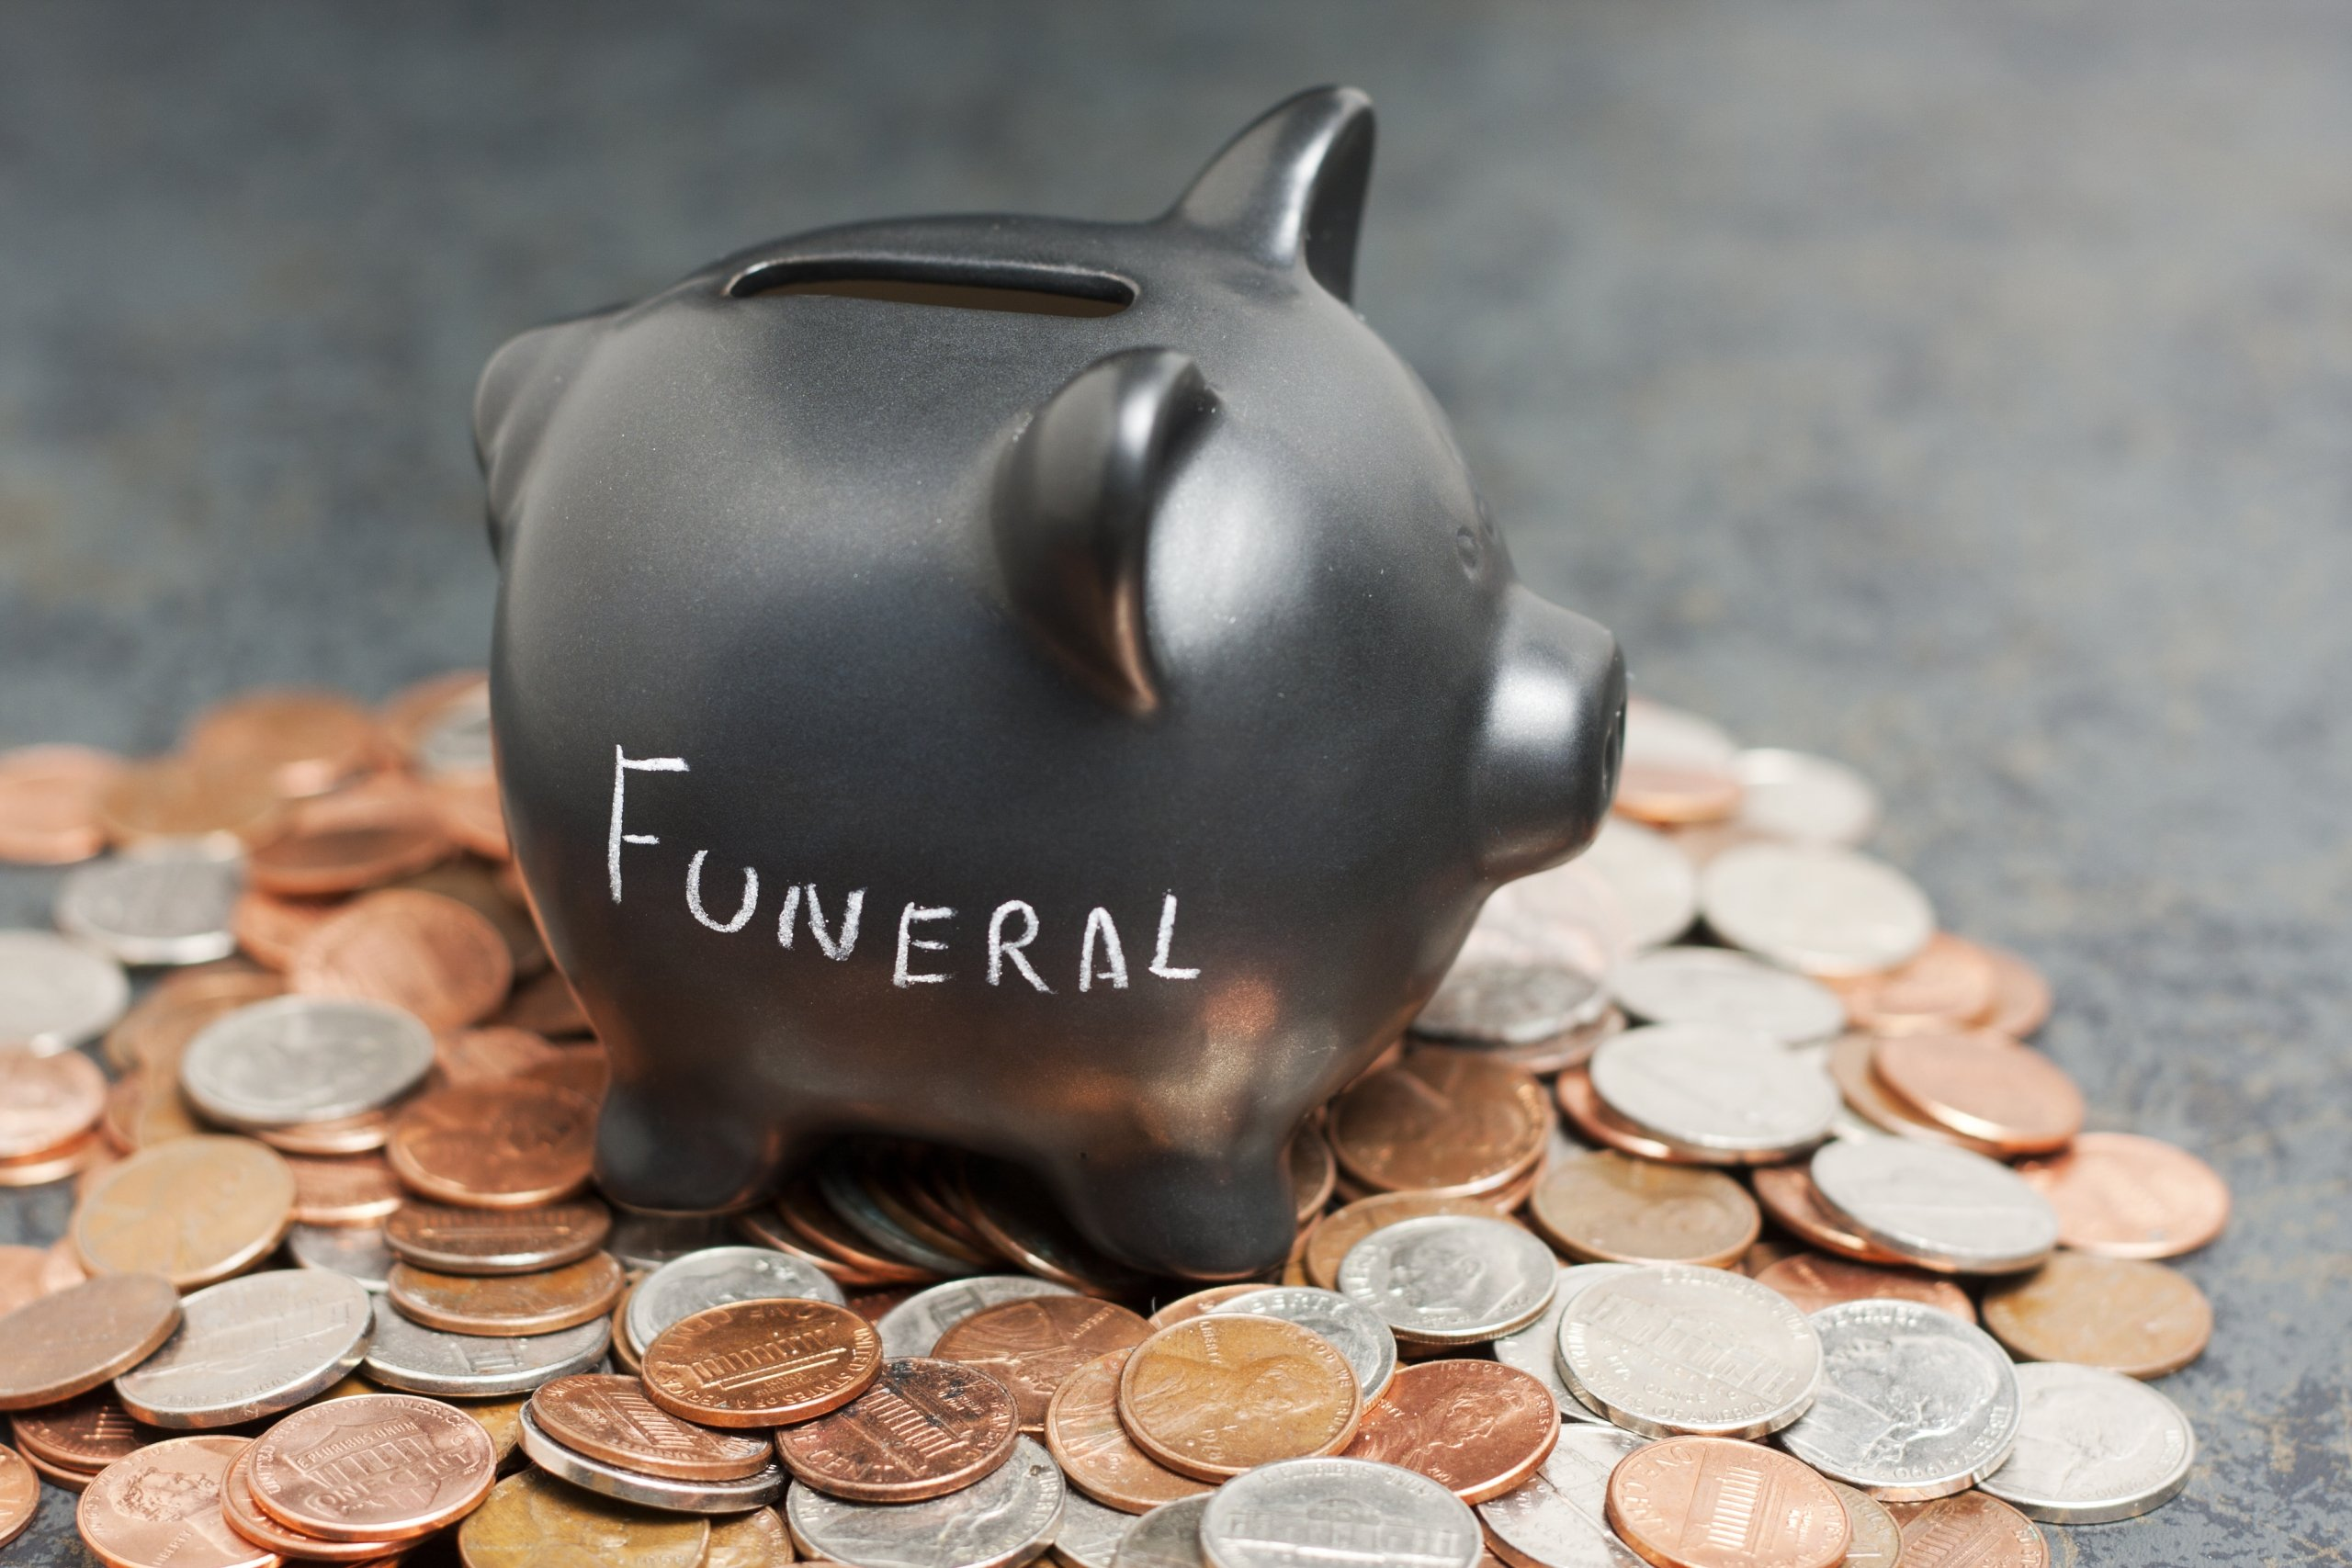 Budgeting for a funeral